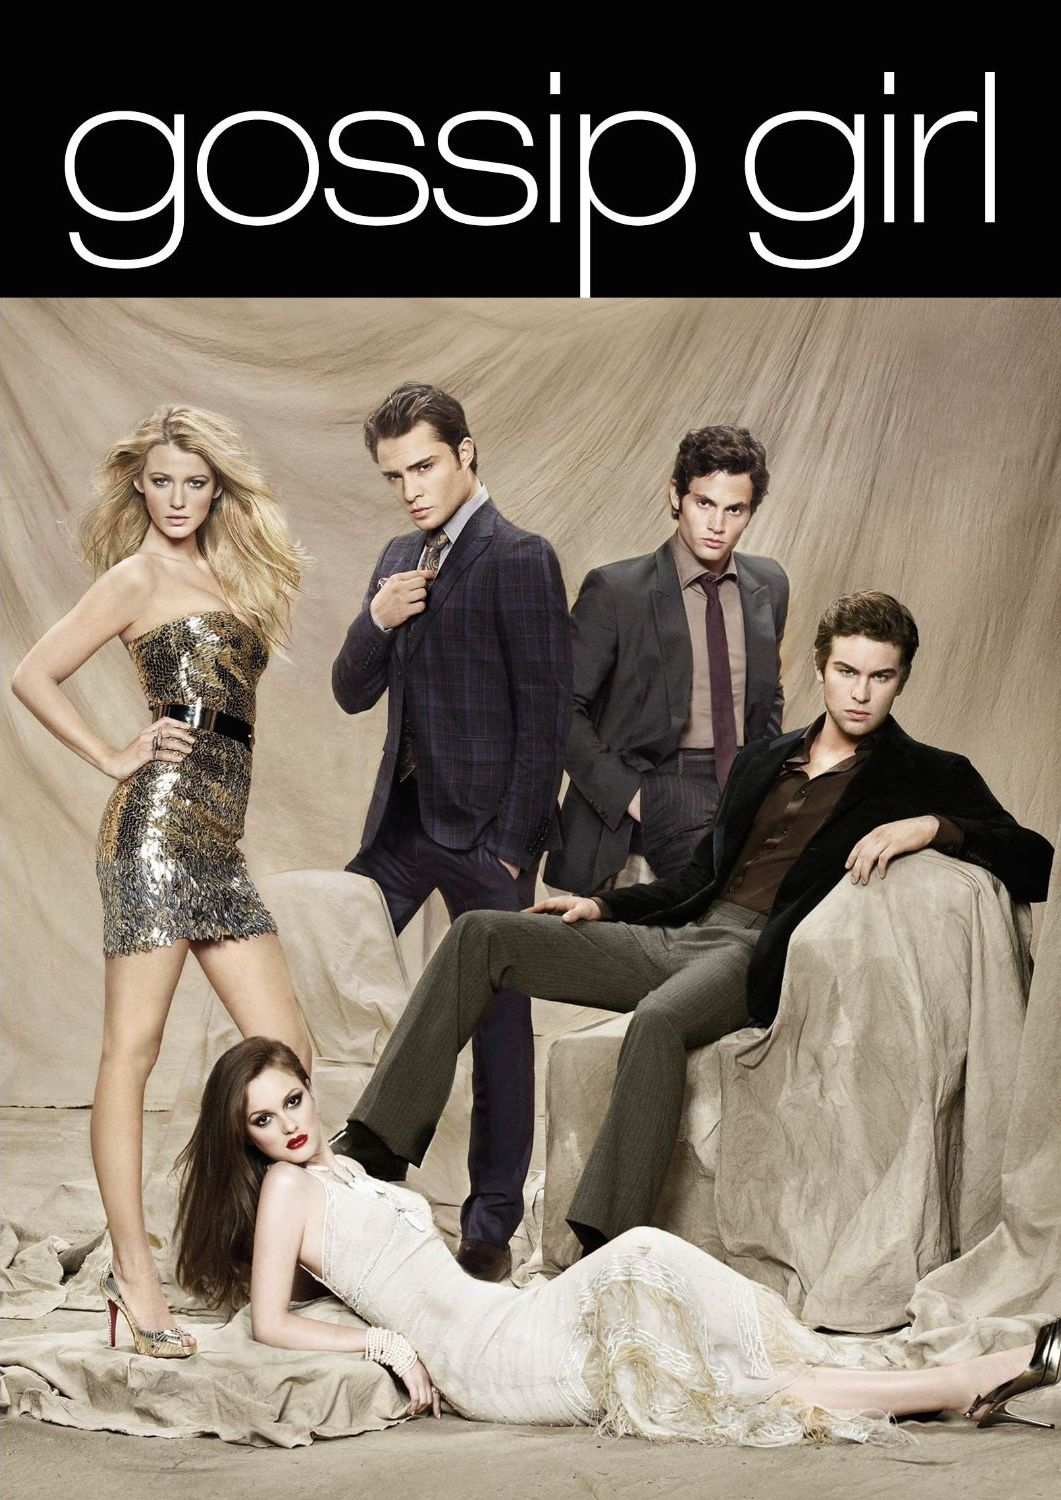 [RS] [HDTV] Gossip Girl Saison 05 Episode 12